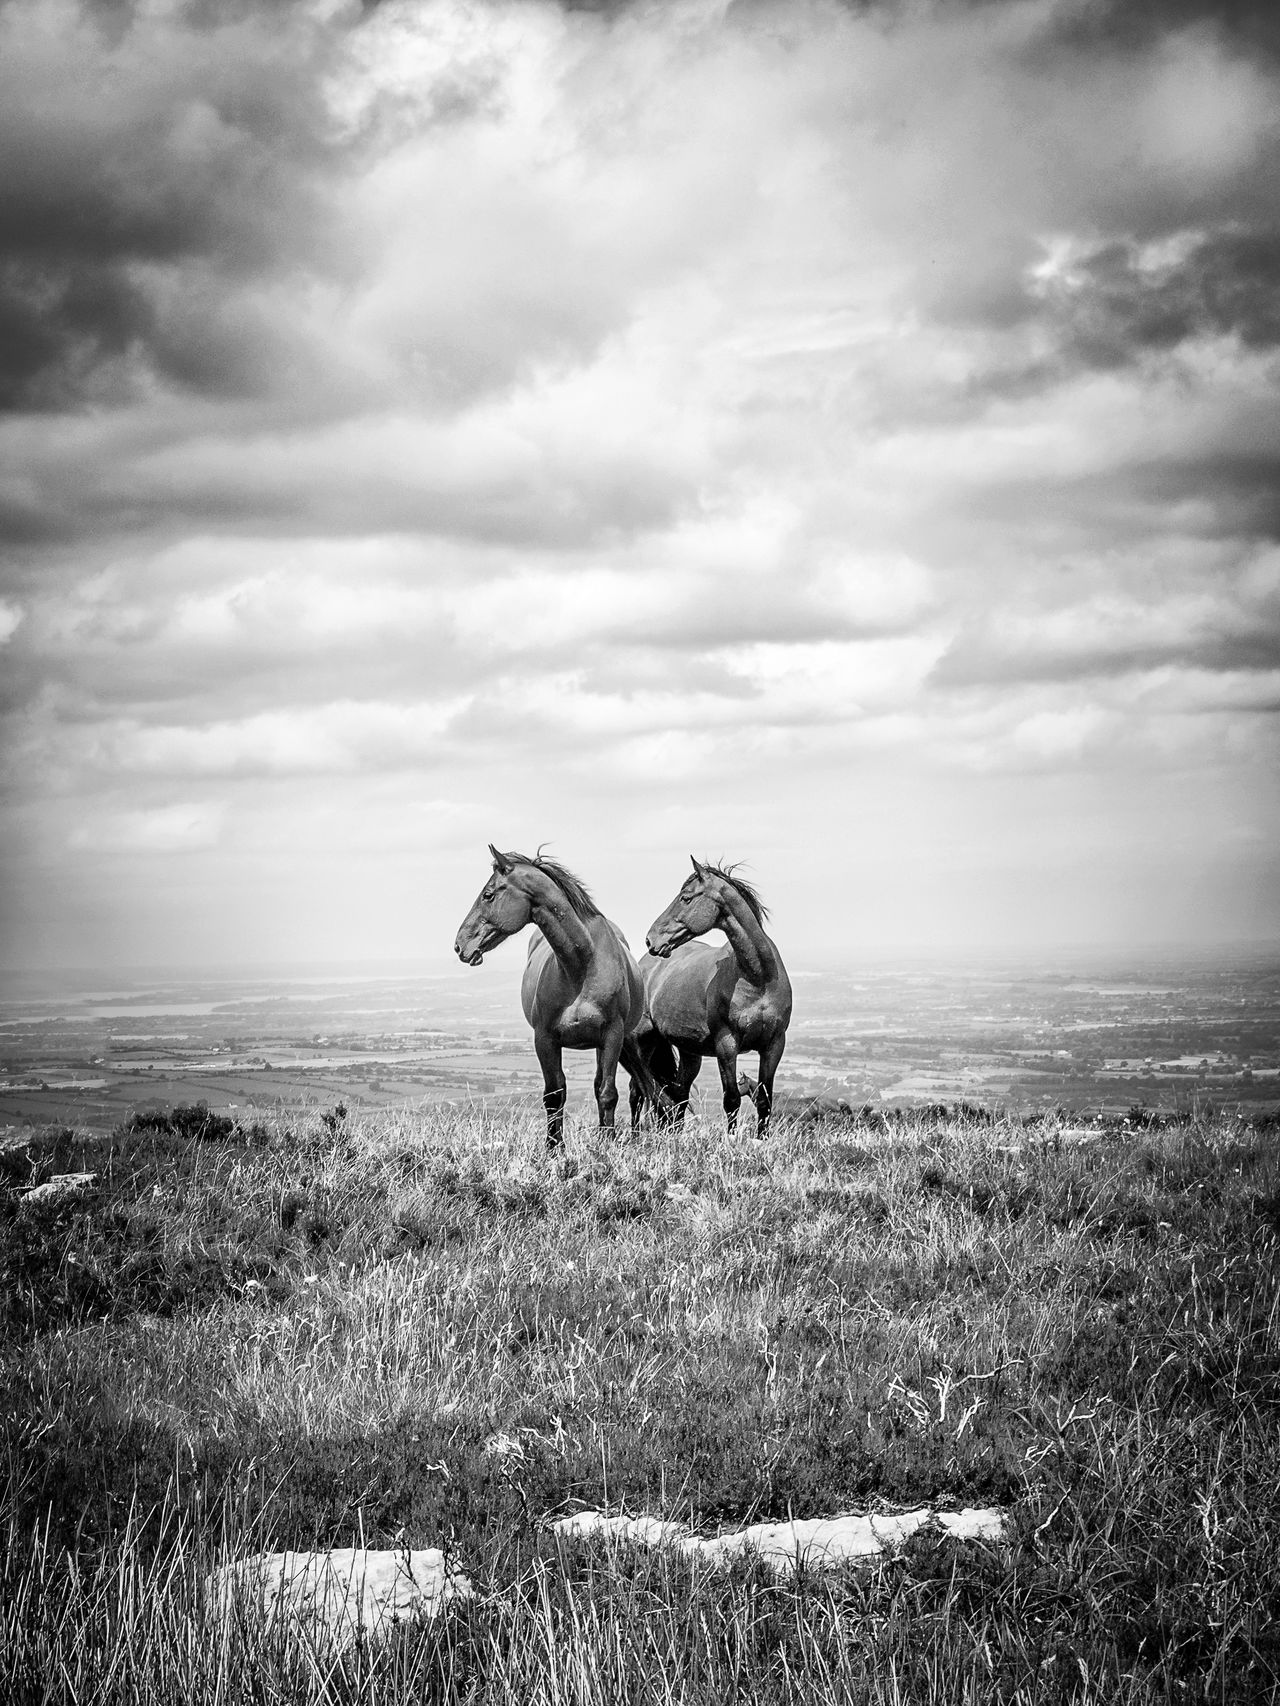 🐎🐎 Cloud - Sky Nature Animal Sky Outdoors Mammal Day No People Domestic Animals Animal Themes Horse Horses Equine Hiking Silverminesmountain Ireland Lost In The Landscape County Tipperary Black And White Black & White Black And White Friday